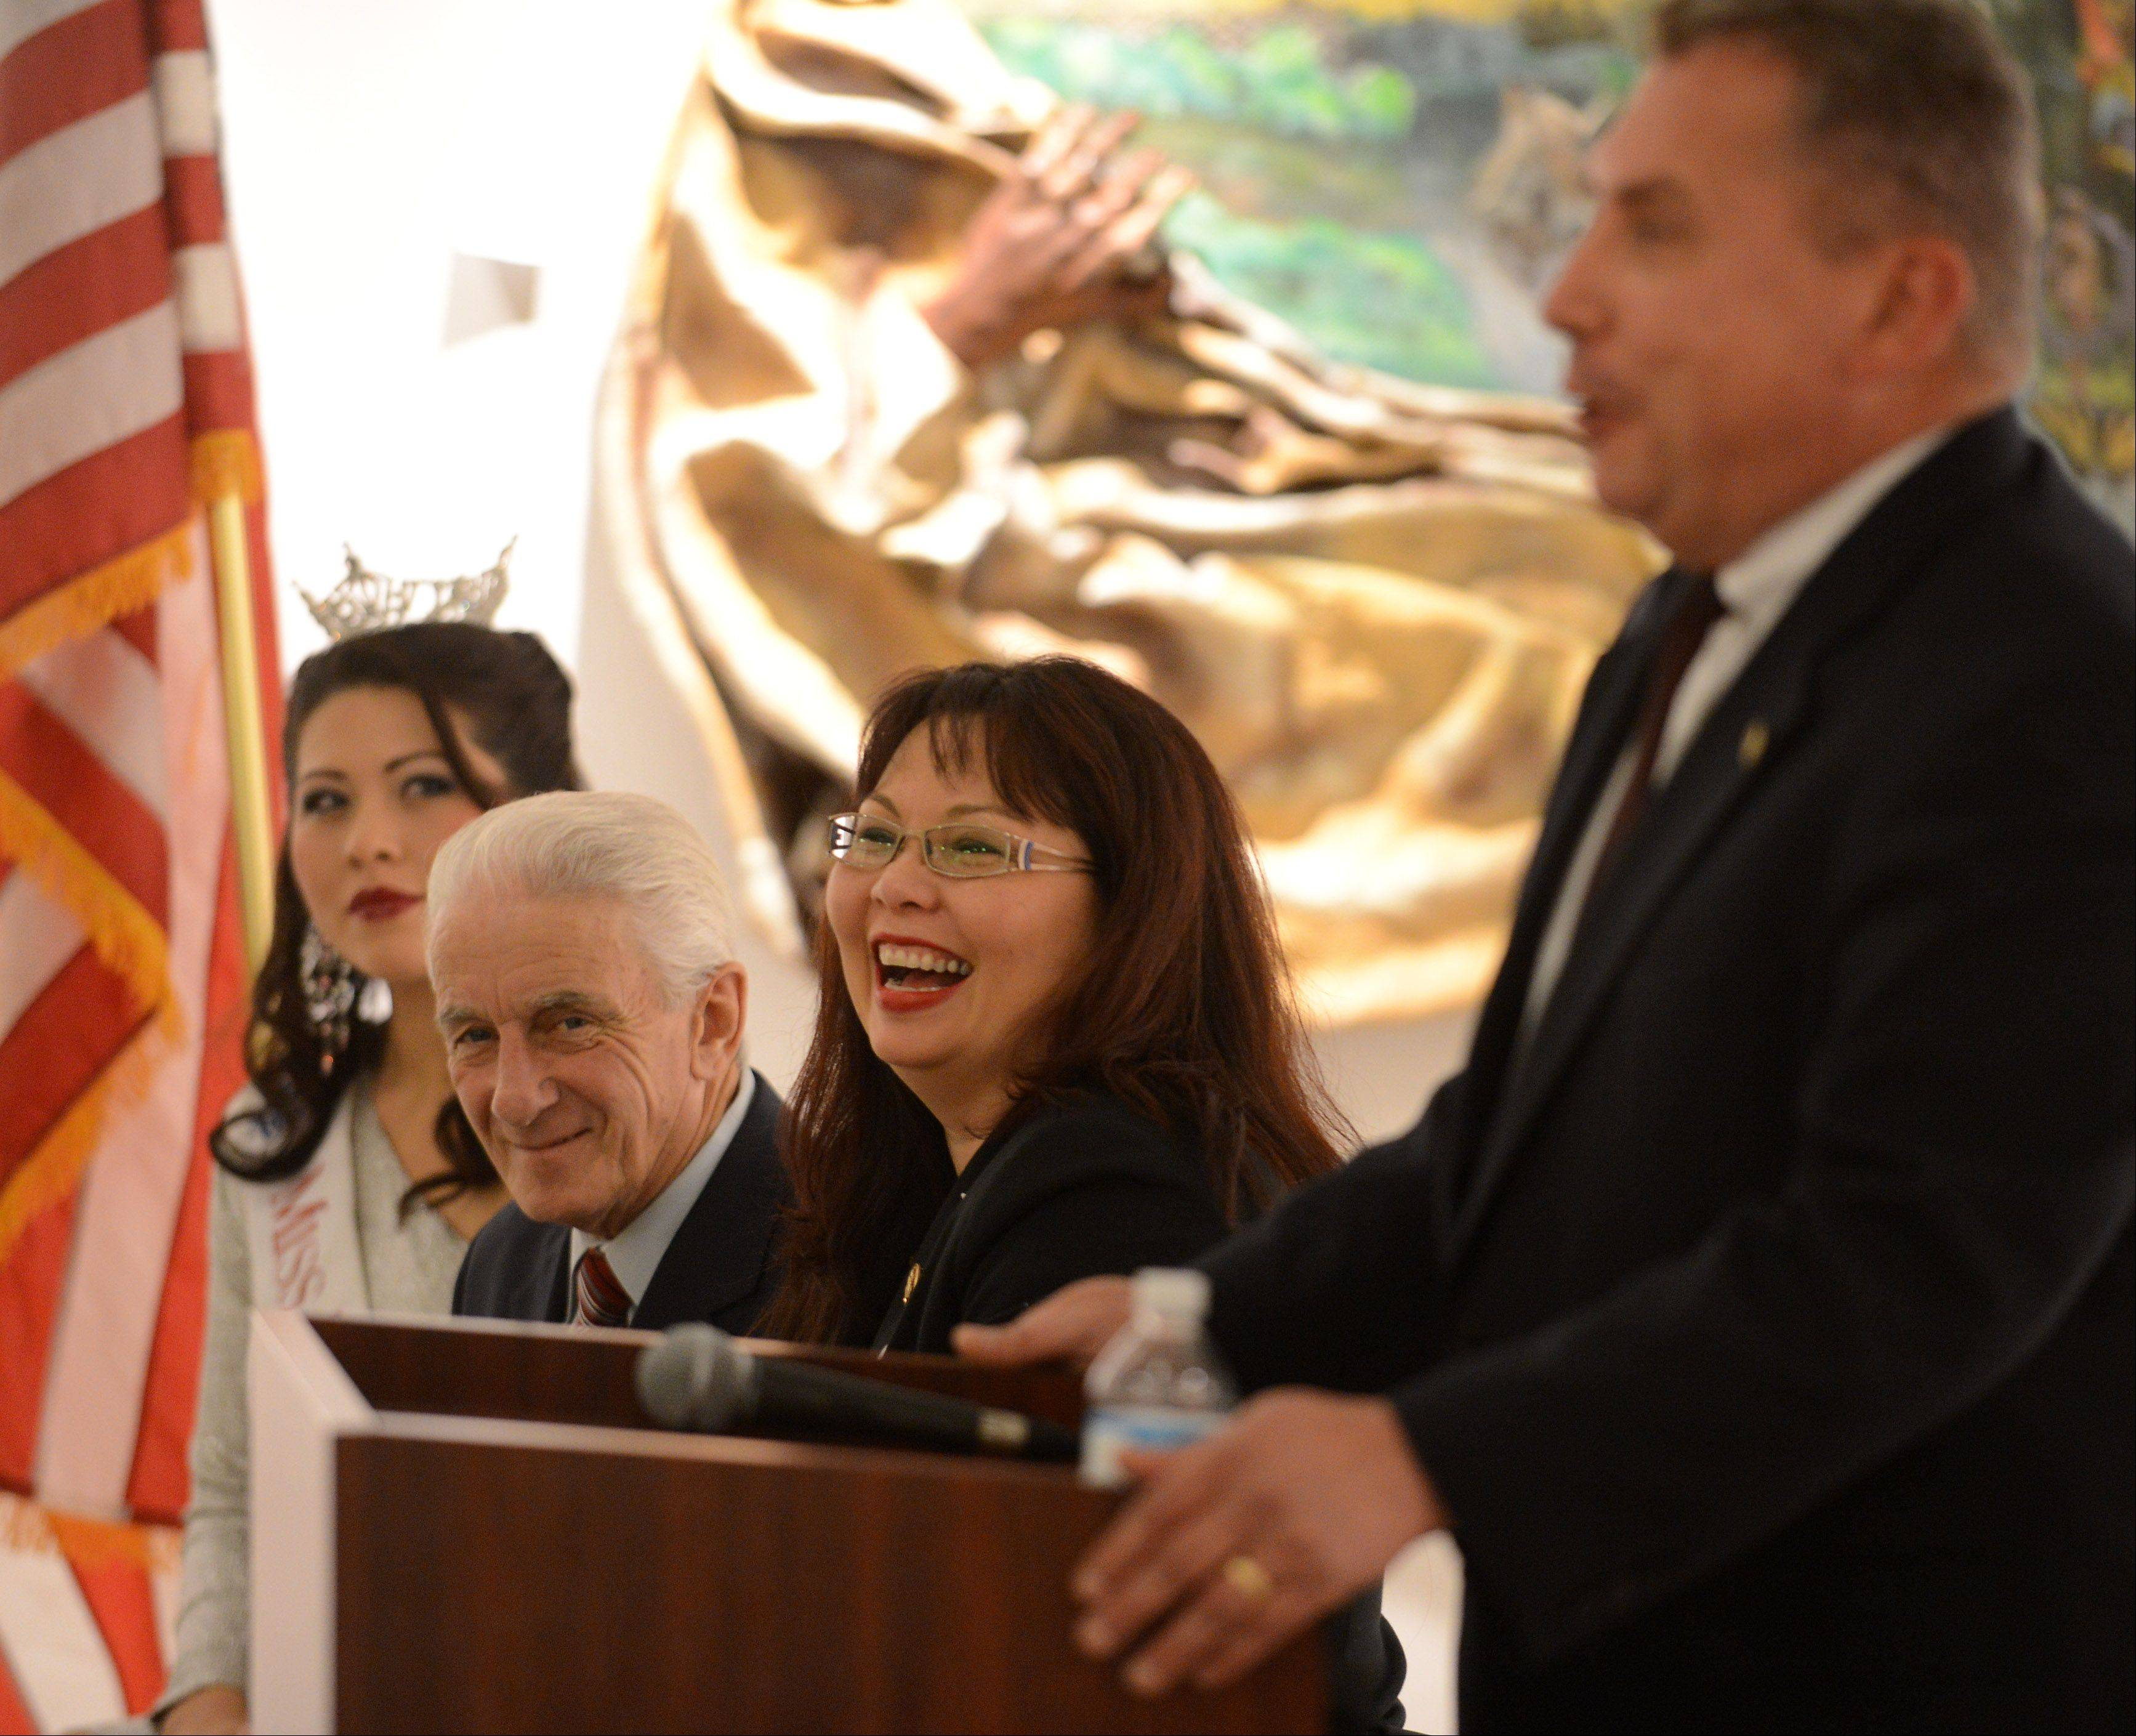 U.S. Rep. Tammy Duckworth laughs as state senator Mike Noland talks about her before she speaks at �Salute to Women Veterans: Past and Present� Friday at Elgin ArtSpace Lofts.